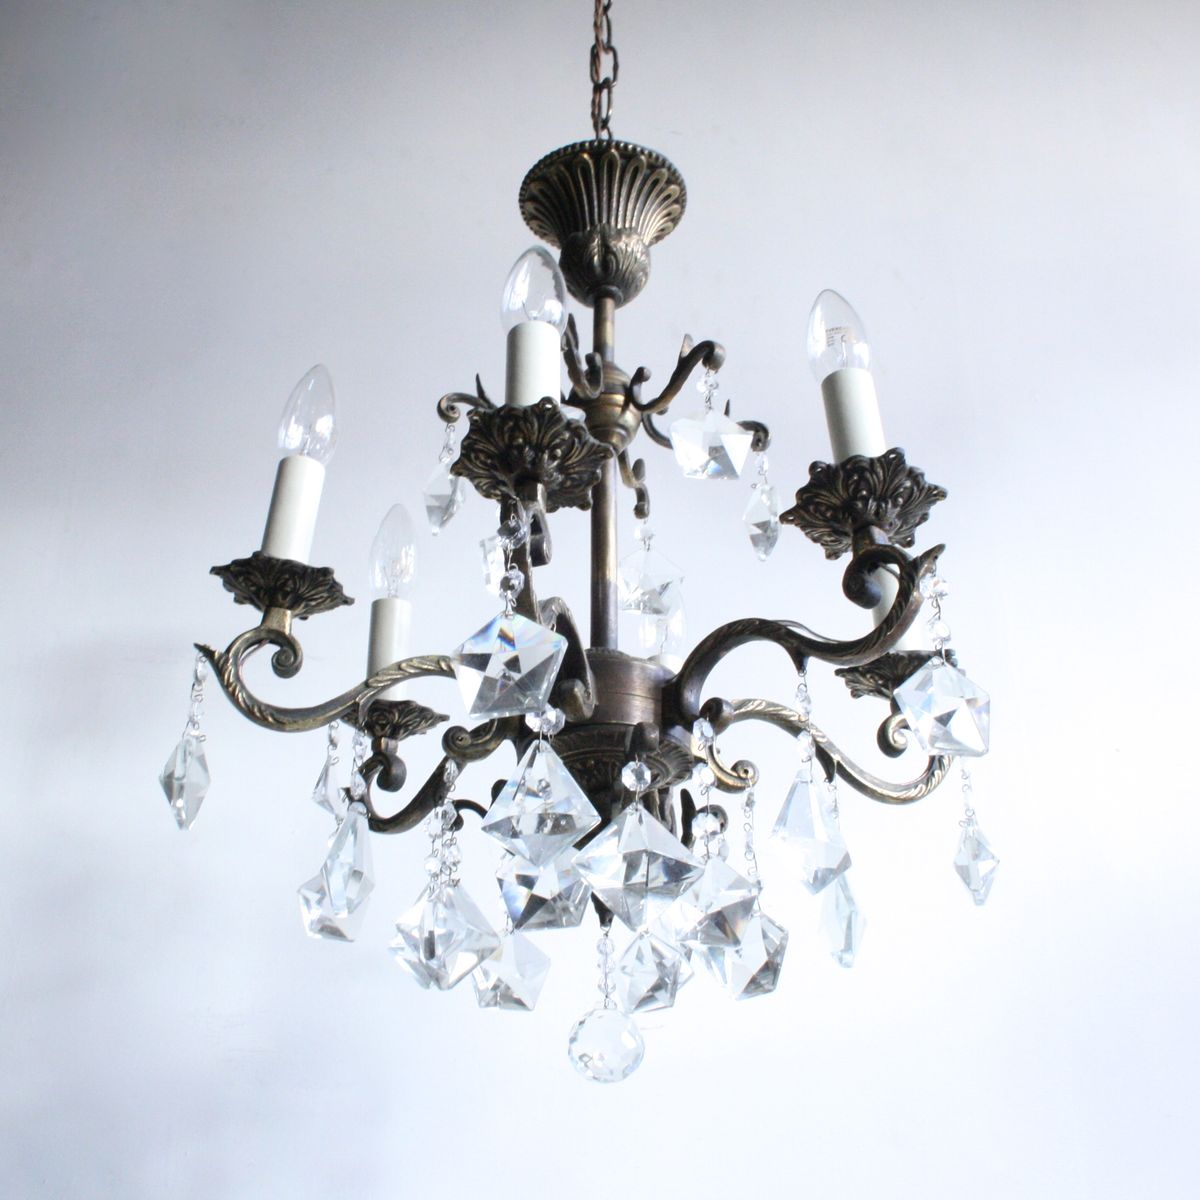 Antique French Brass & Crystal Chandelier - Antique French Brass & Crystal Chandelier For Sale At Pamono